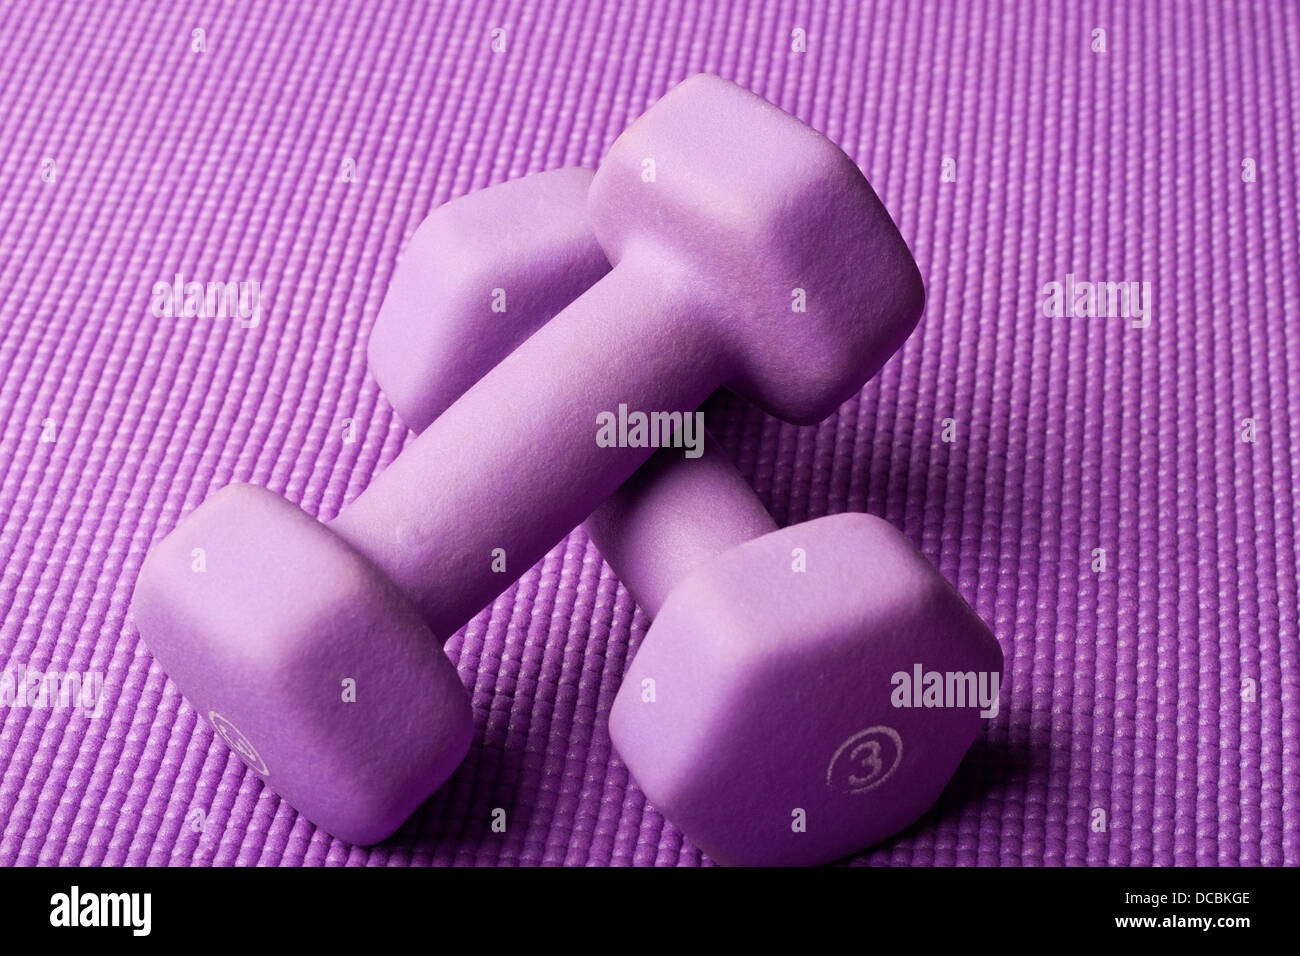 Purple weights on a purple yoga mat - Stock Image